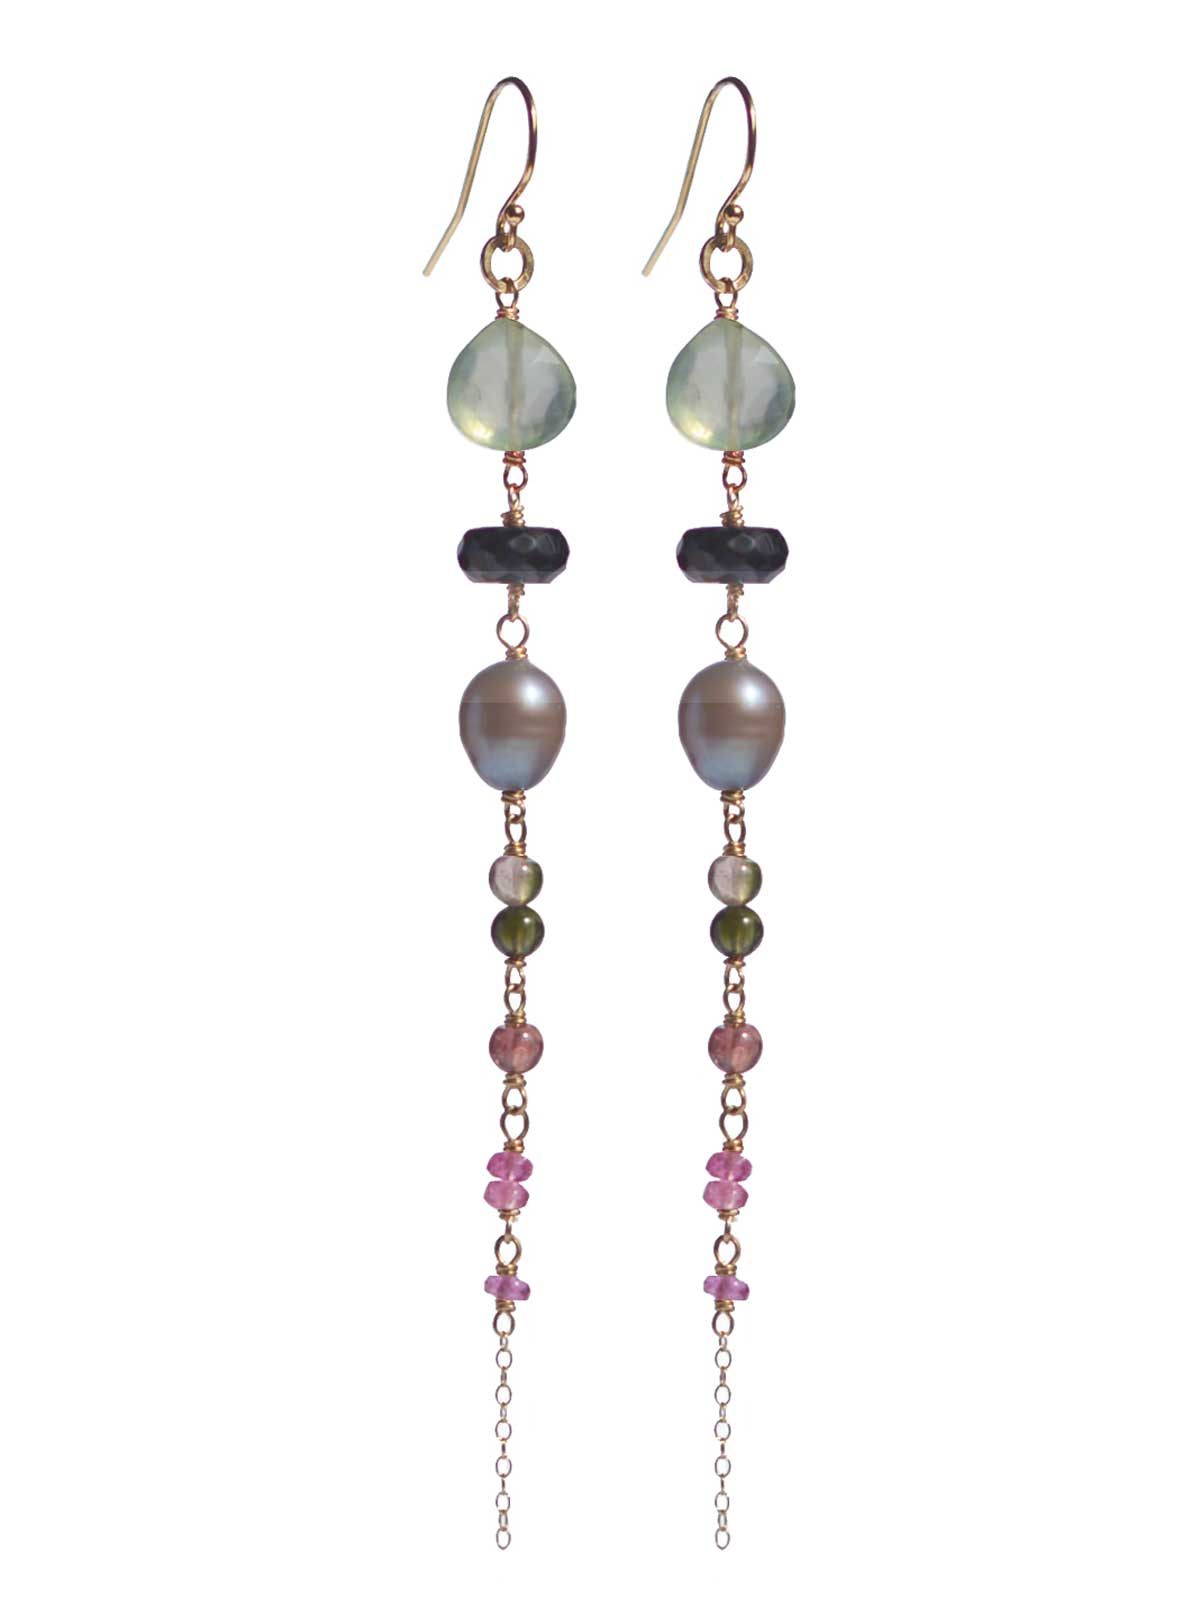 Long earrings 14K Gold-filled Faceted Prehnite Tourmaline Black Spinel gray Freswater.Pearl